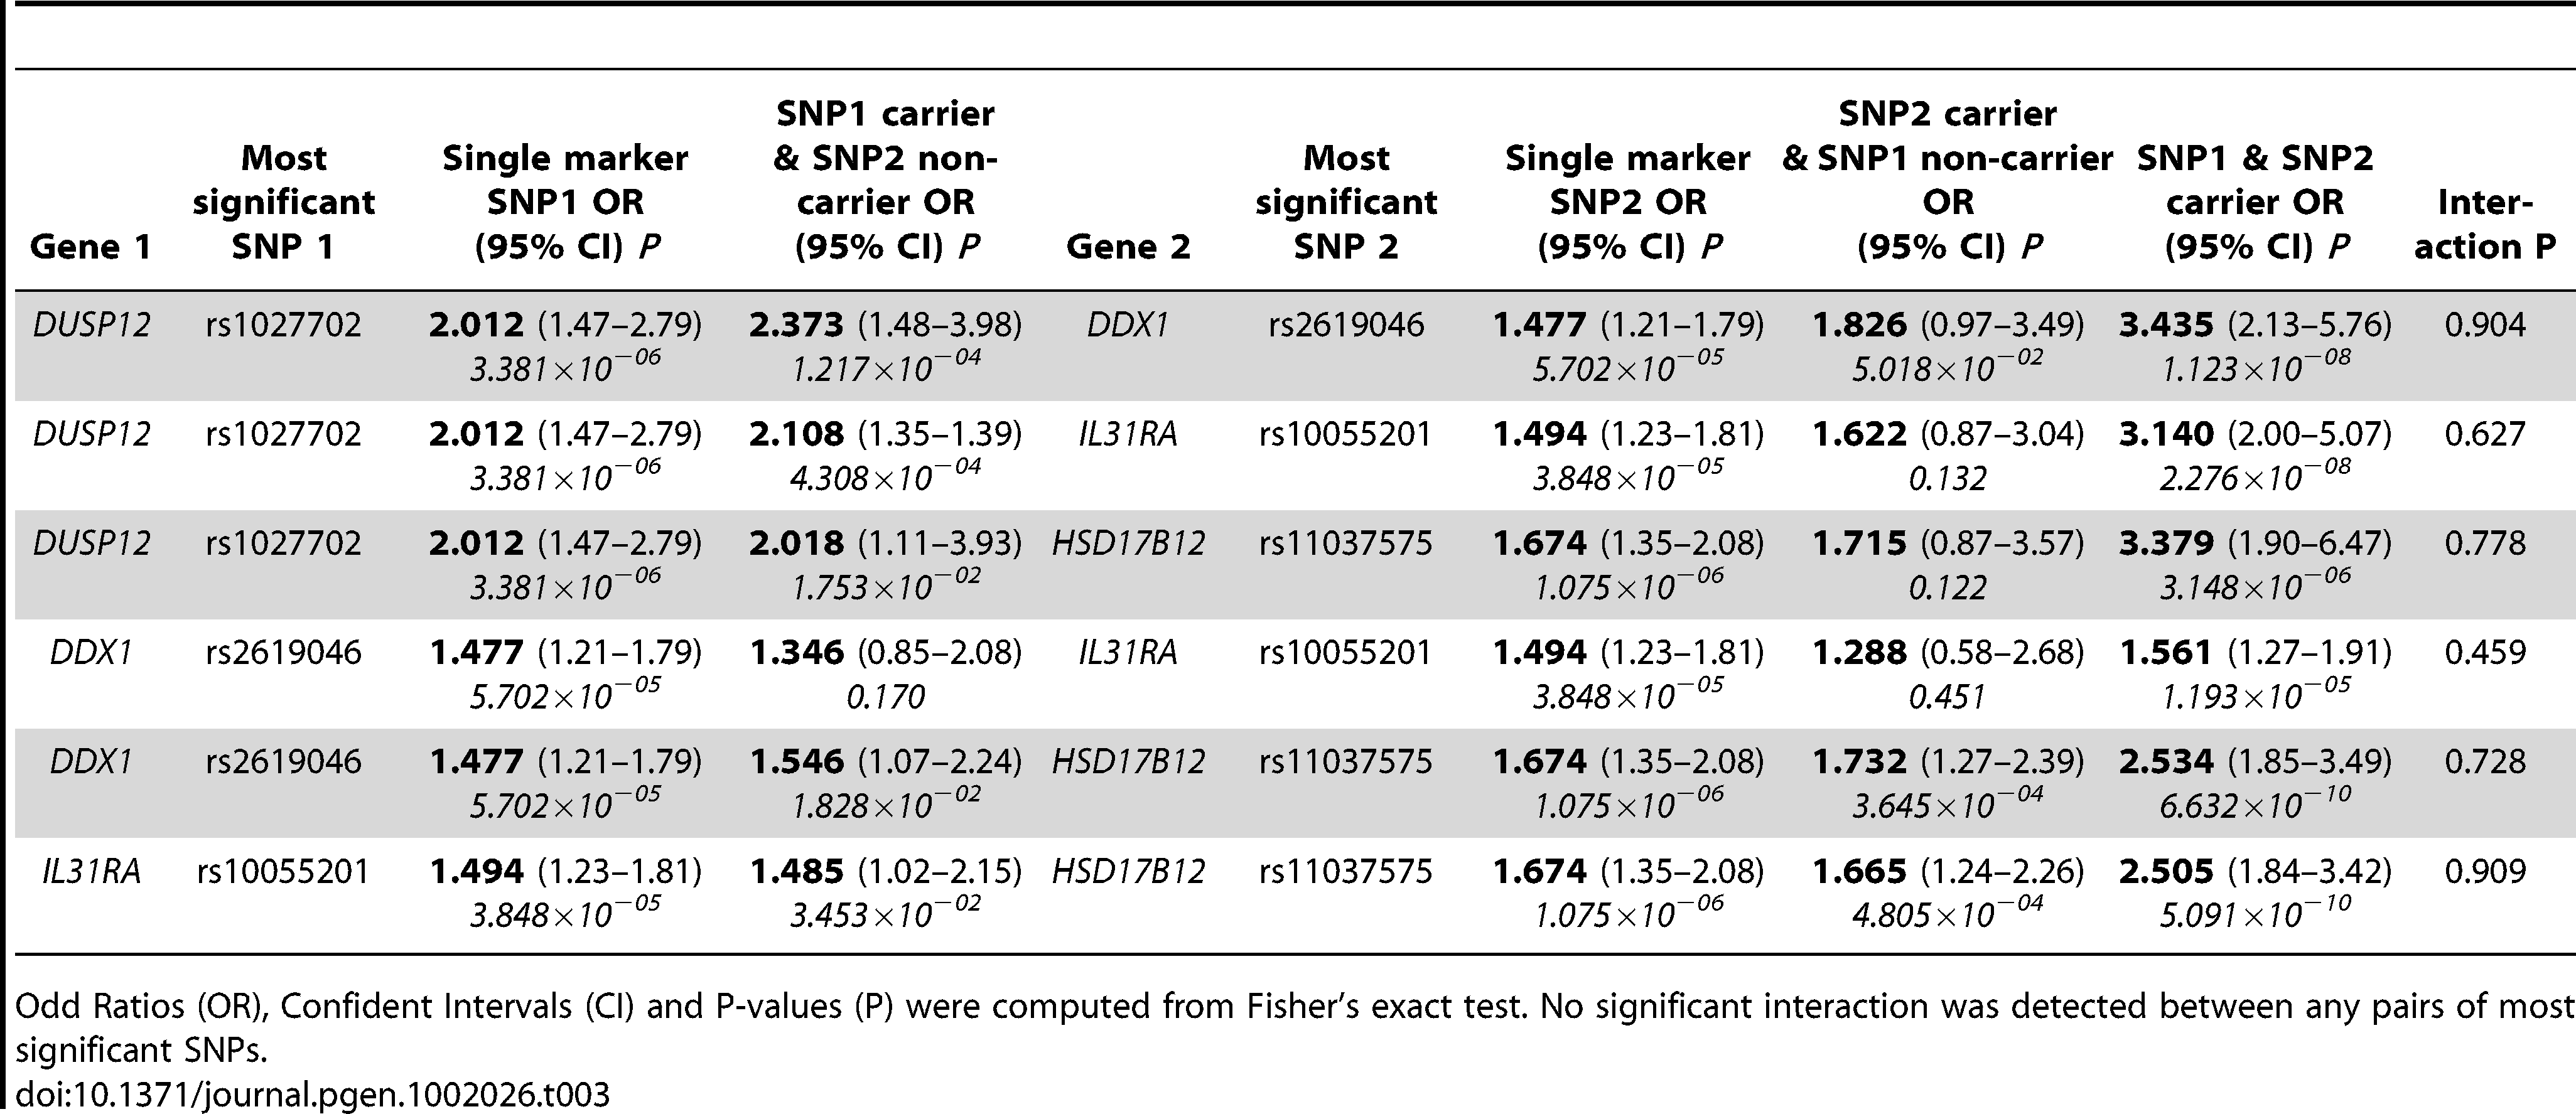 Estimates of low-risk neuroblastoma odd ratios by genotype between the most significant SNPs.